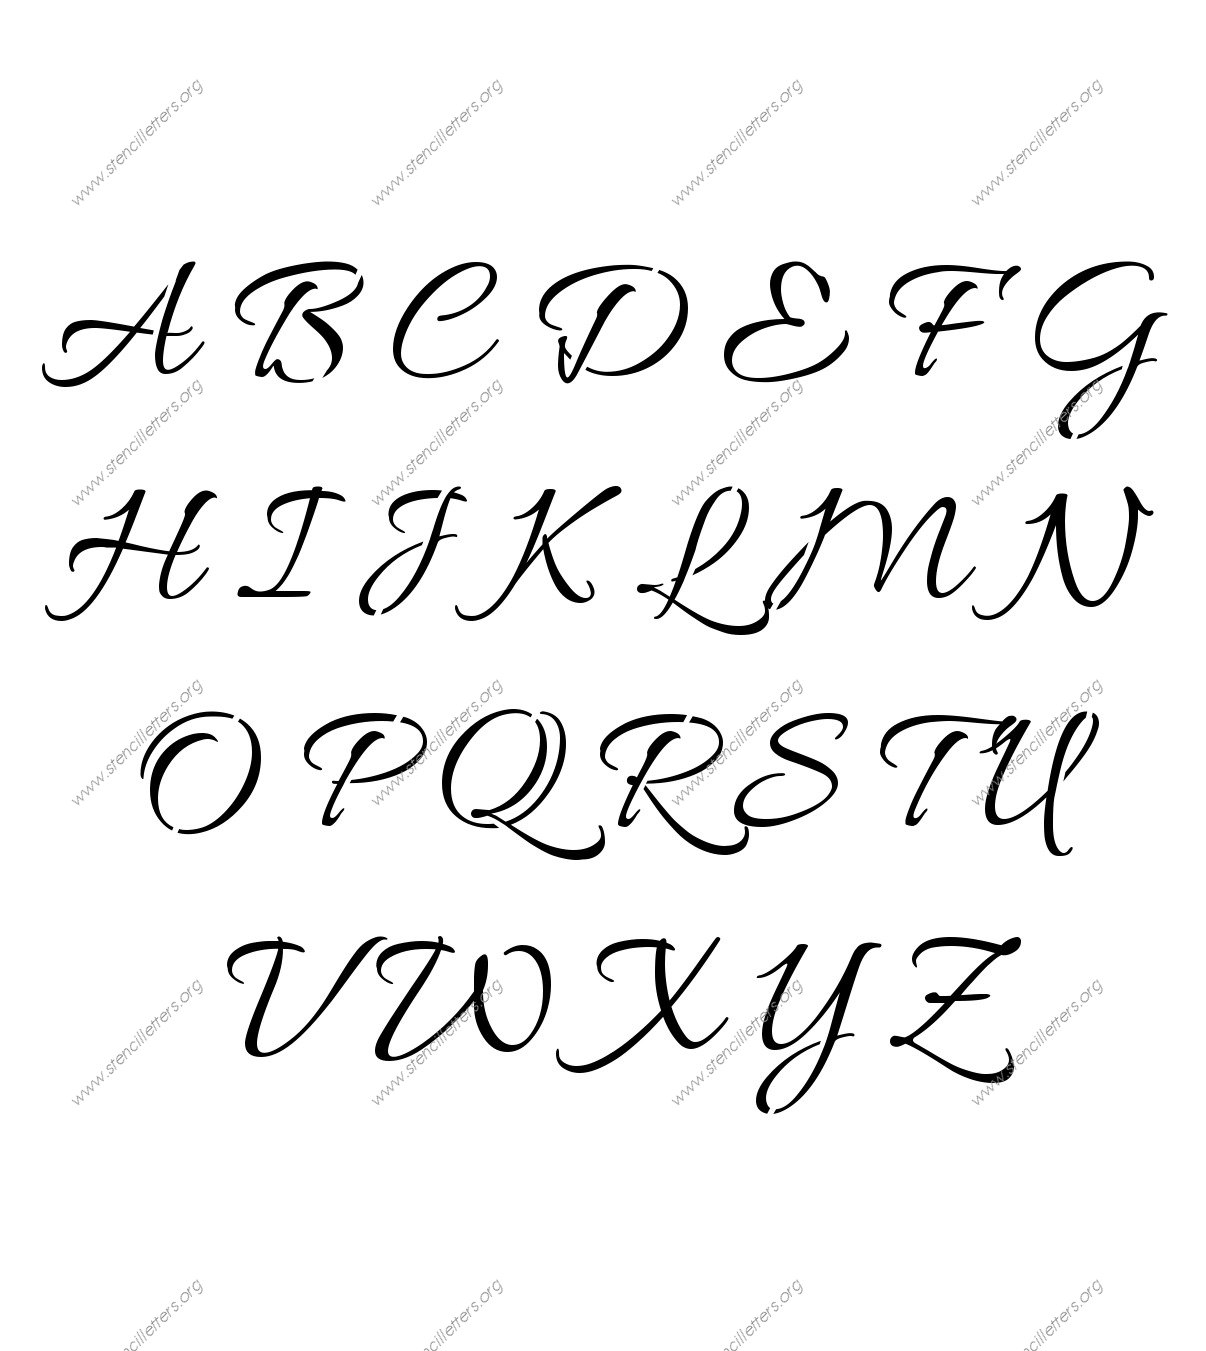 Worksheets Alphabet In Cursive Capital Letters stylish cursive letter stencils numbers and custom made to order connected stencil set